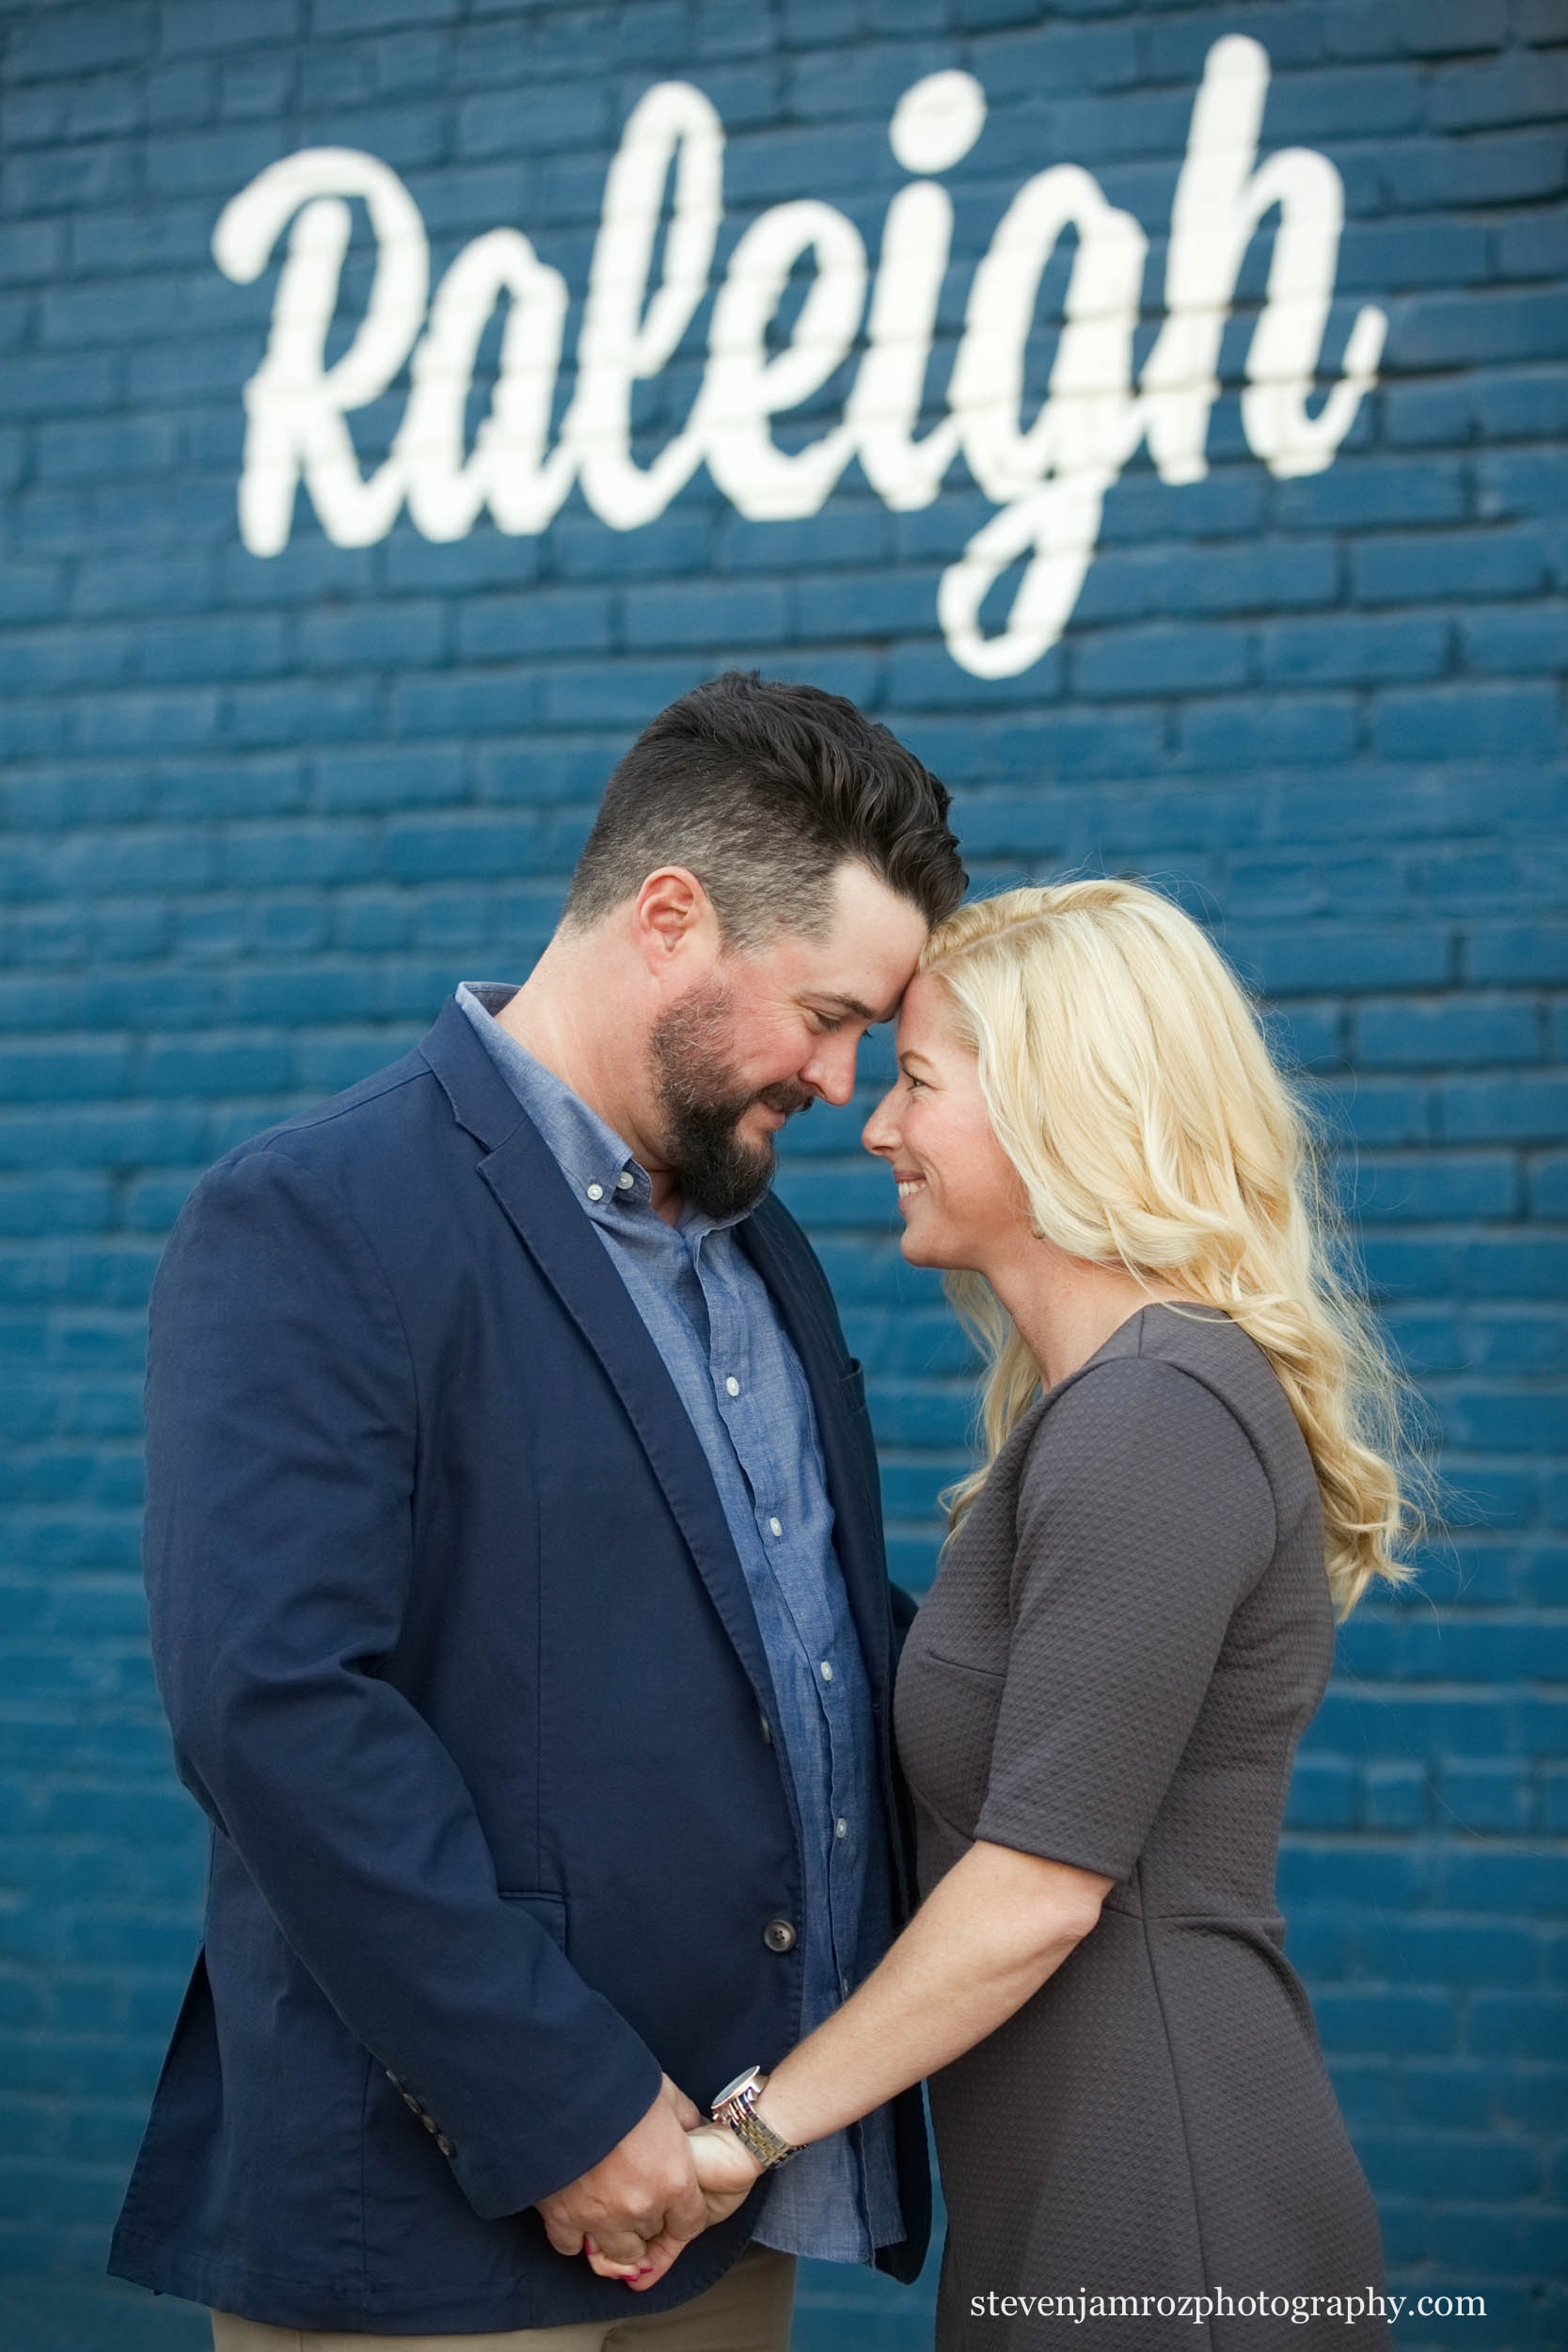 downtown-raleigh-engagement-photo-session-steven-jamroz.jpg